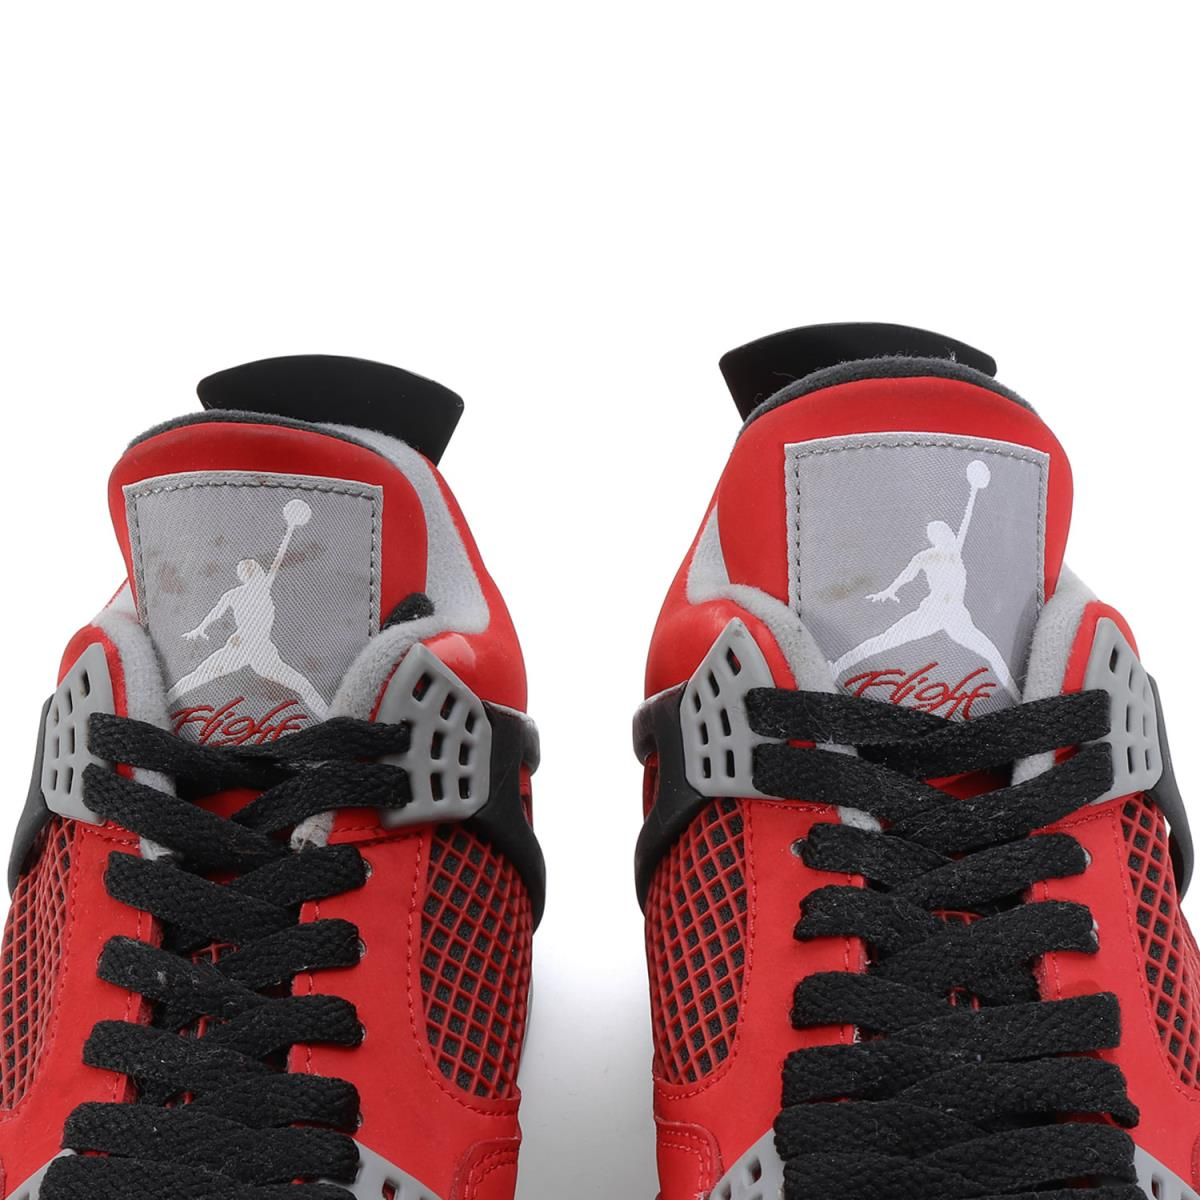 huge selection of 51321 a15f8 ... italy nike nike air jordan 4 retro toro bravo 308497 603 fire red x  white us1129cm